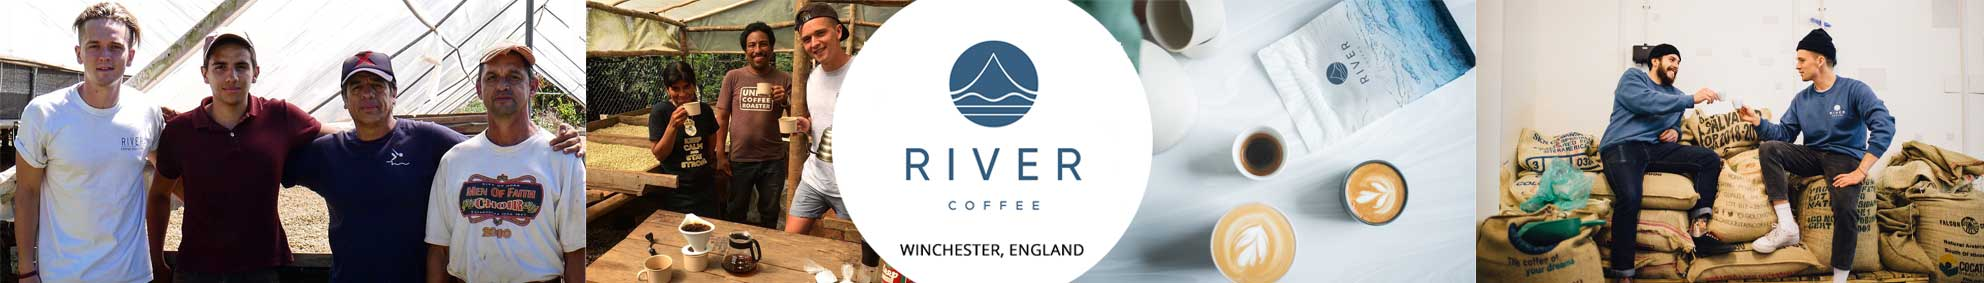 River Coffee Winchester UK Best Subscriptions